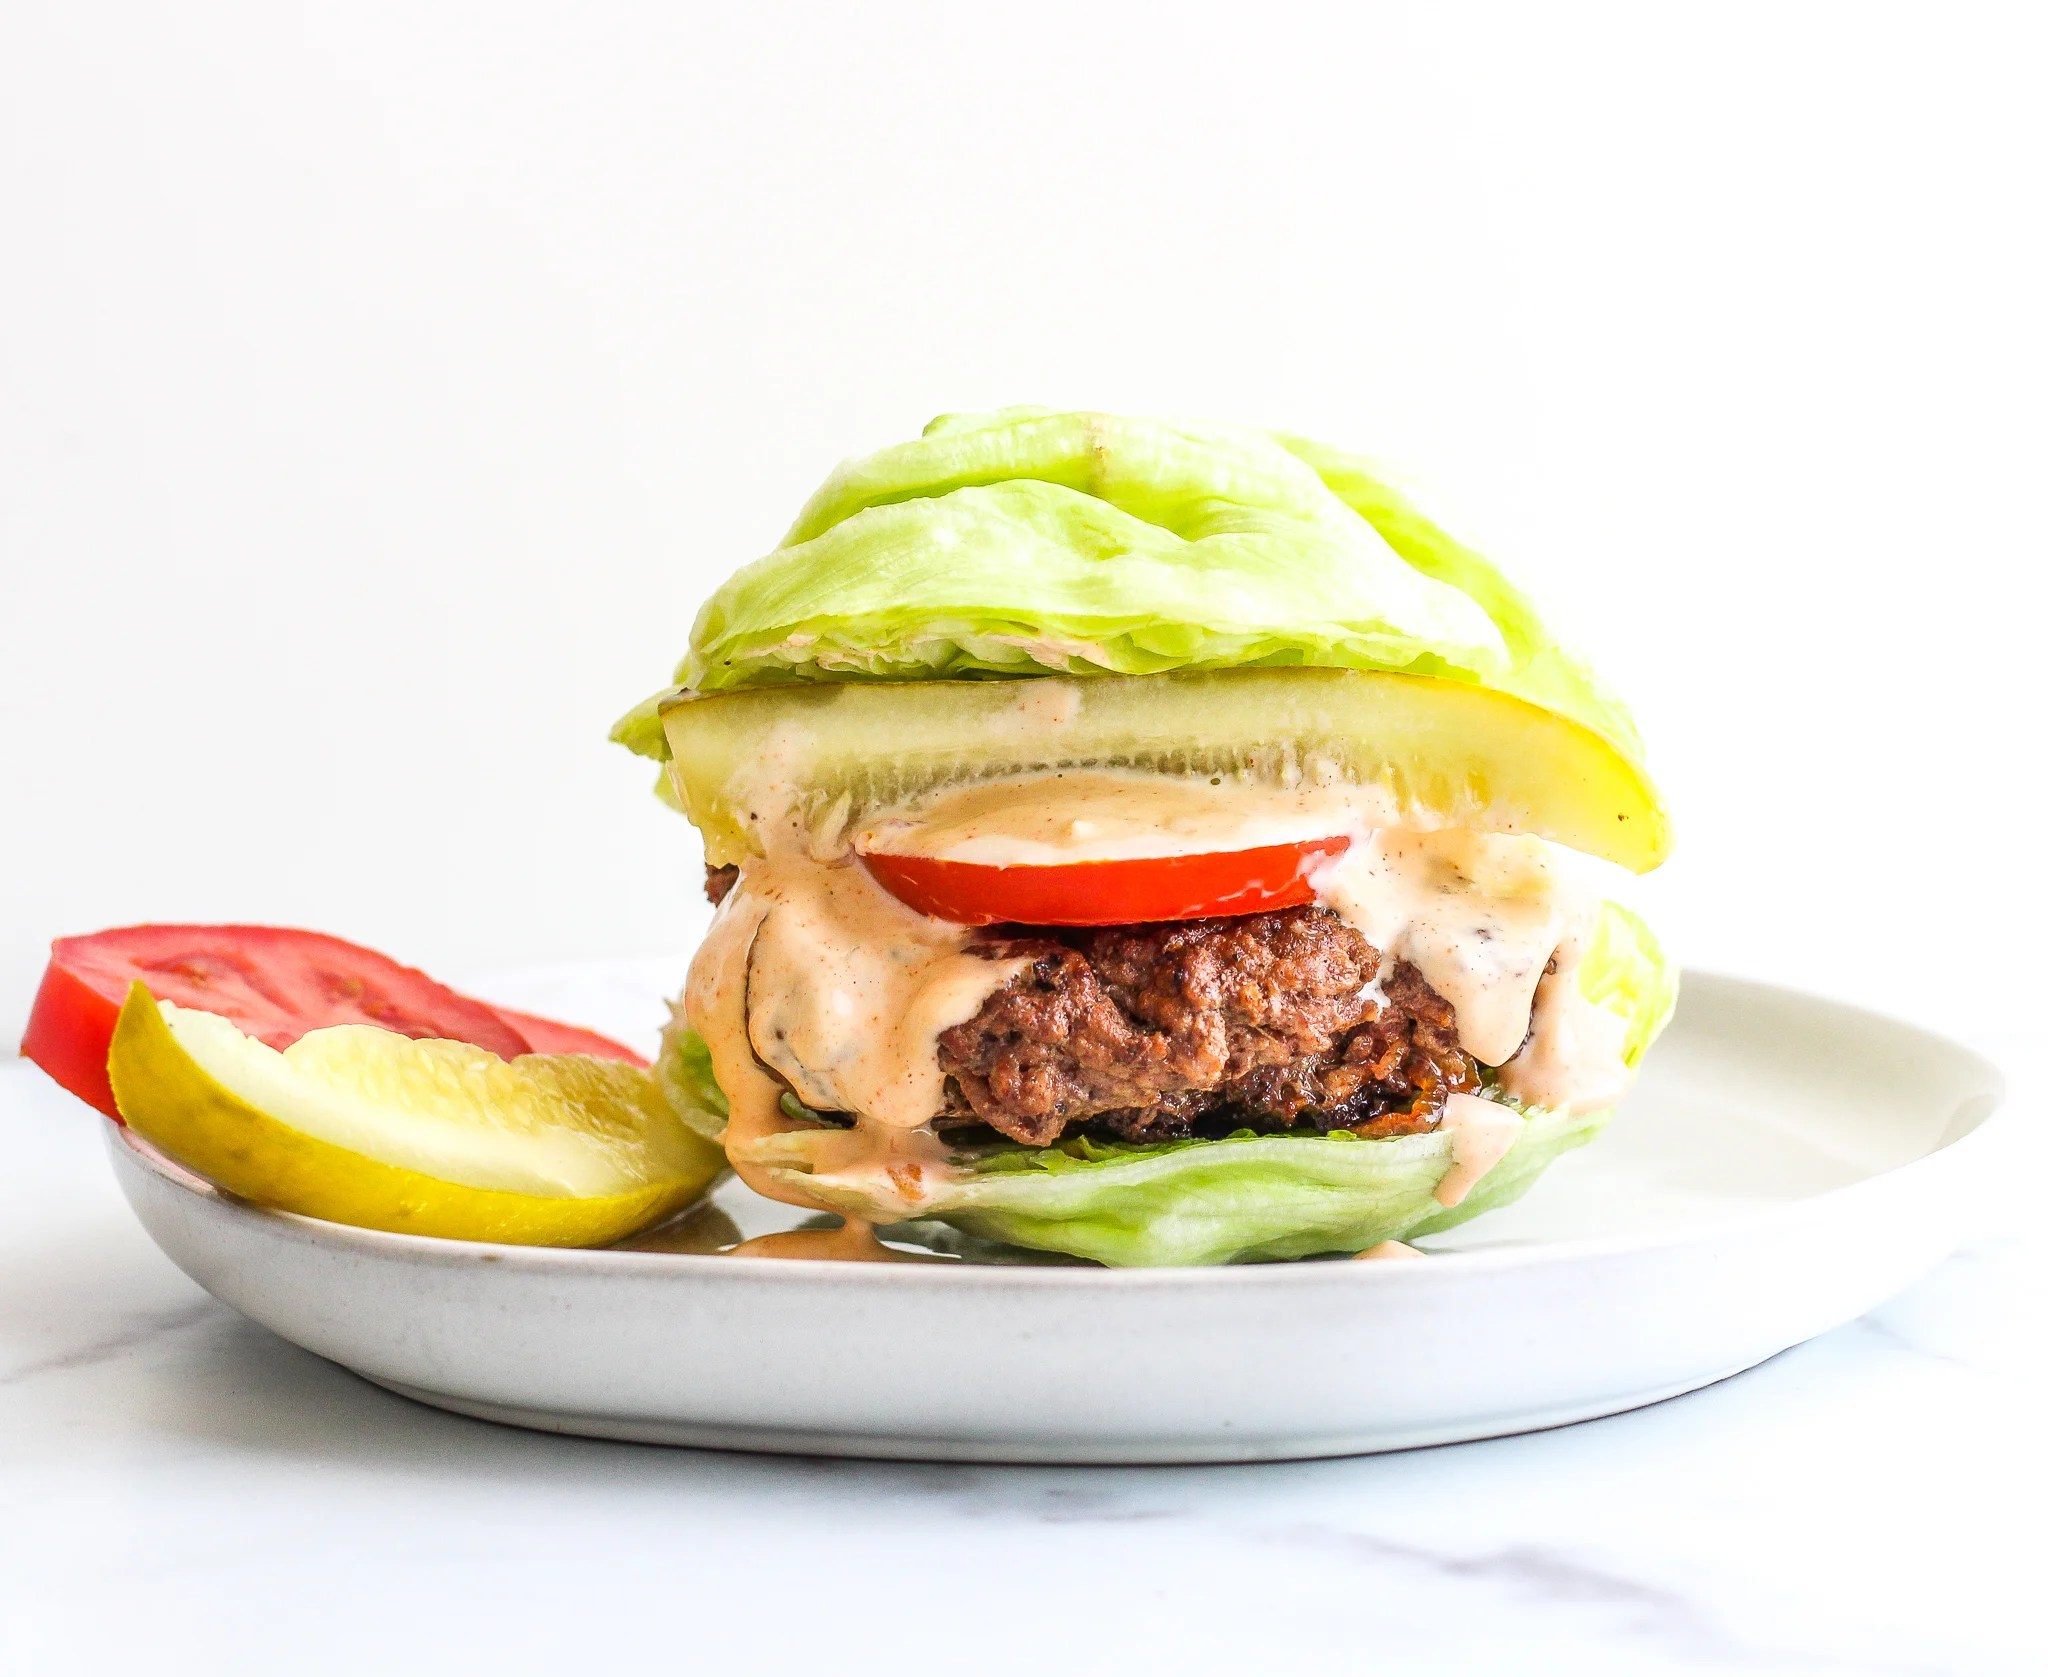 Caramelized Onion Stuffed Burgers